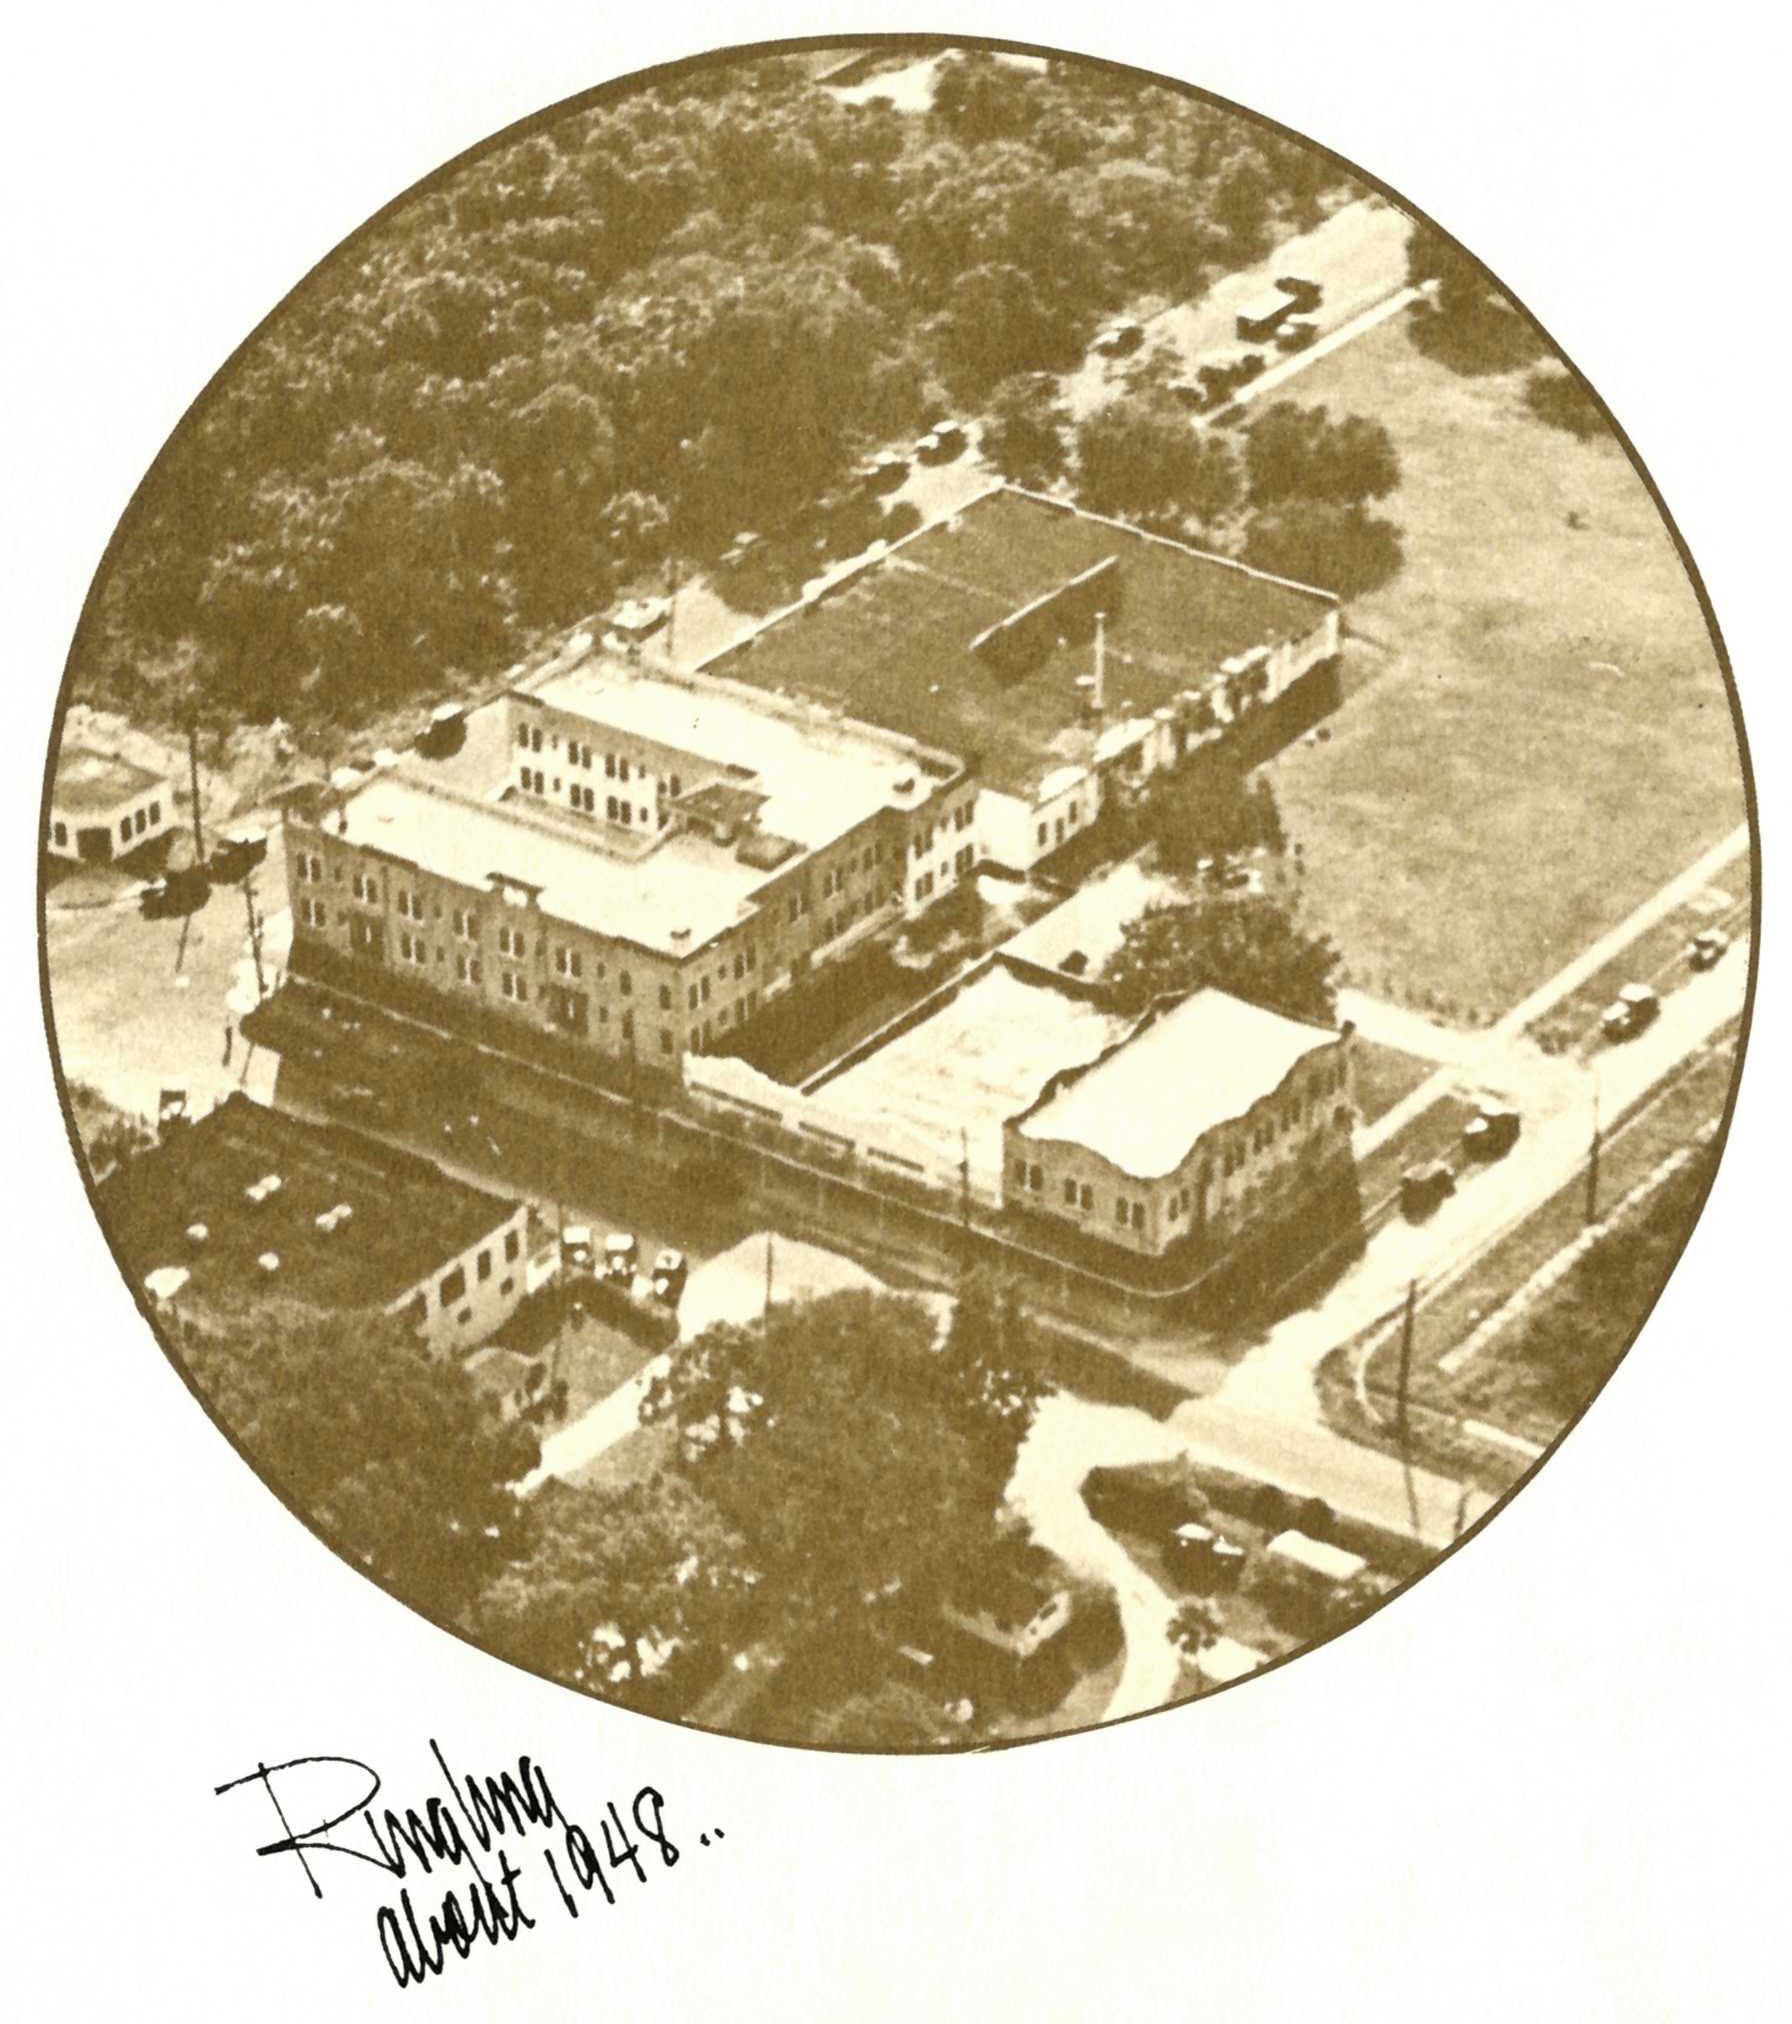 Aerial photo of Ringling School circa 1948 from Portfolio publication